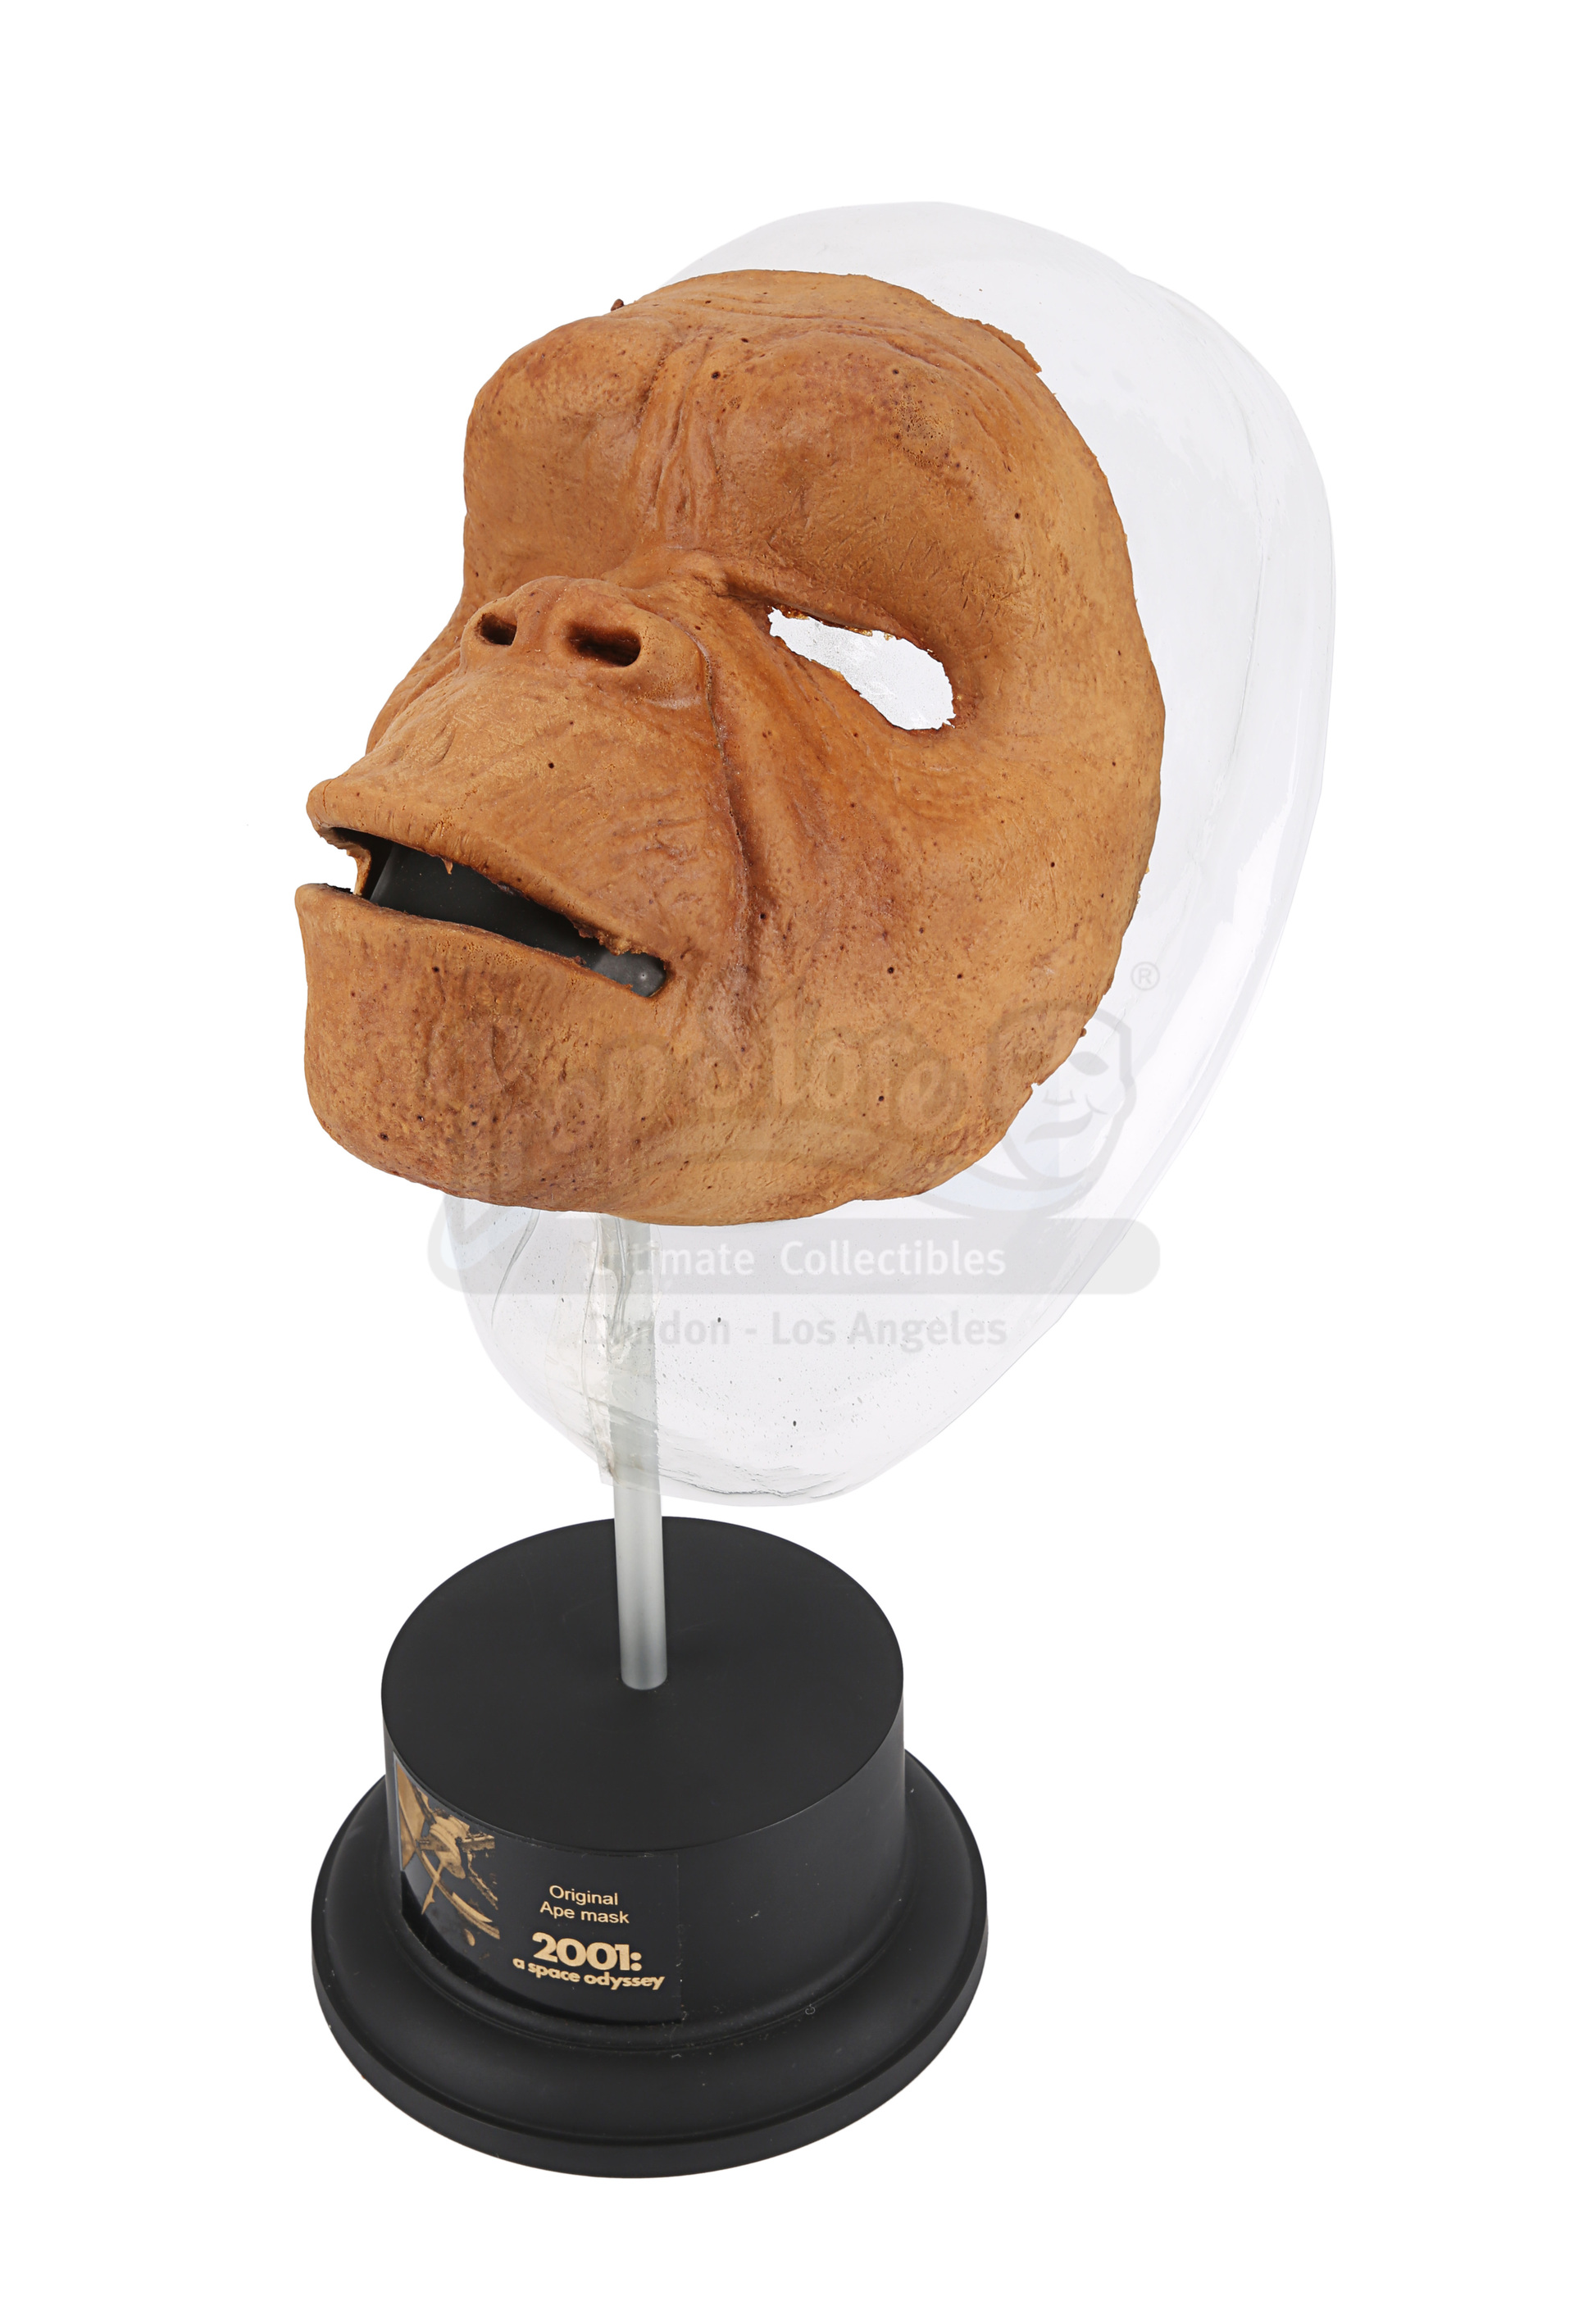 2001: A SPACE ODYSSEY (1968) - Dawn of Man Ape Mask - Image 3 of 12